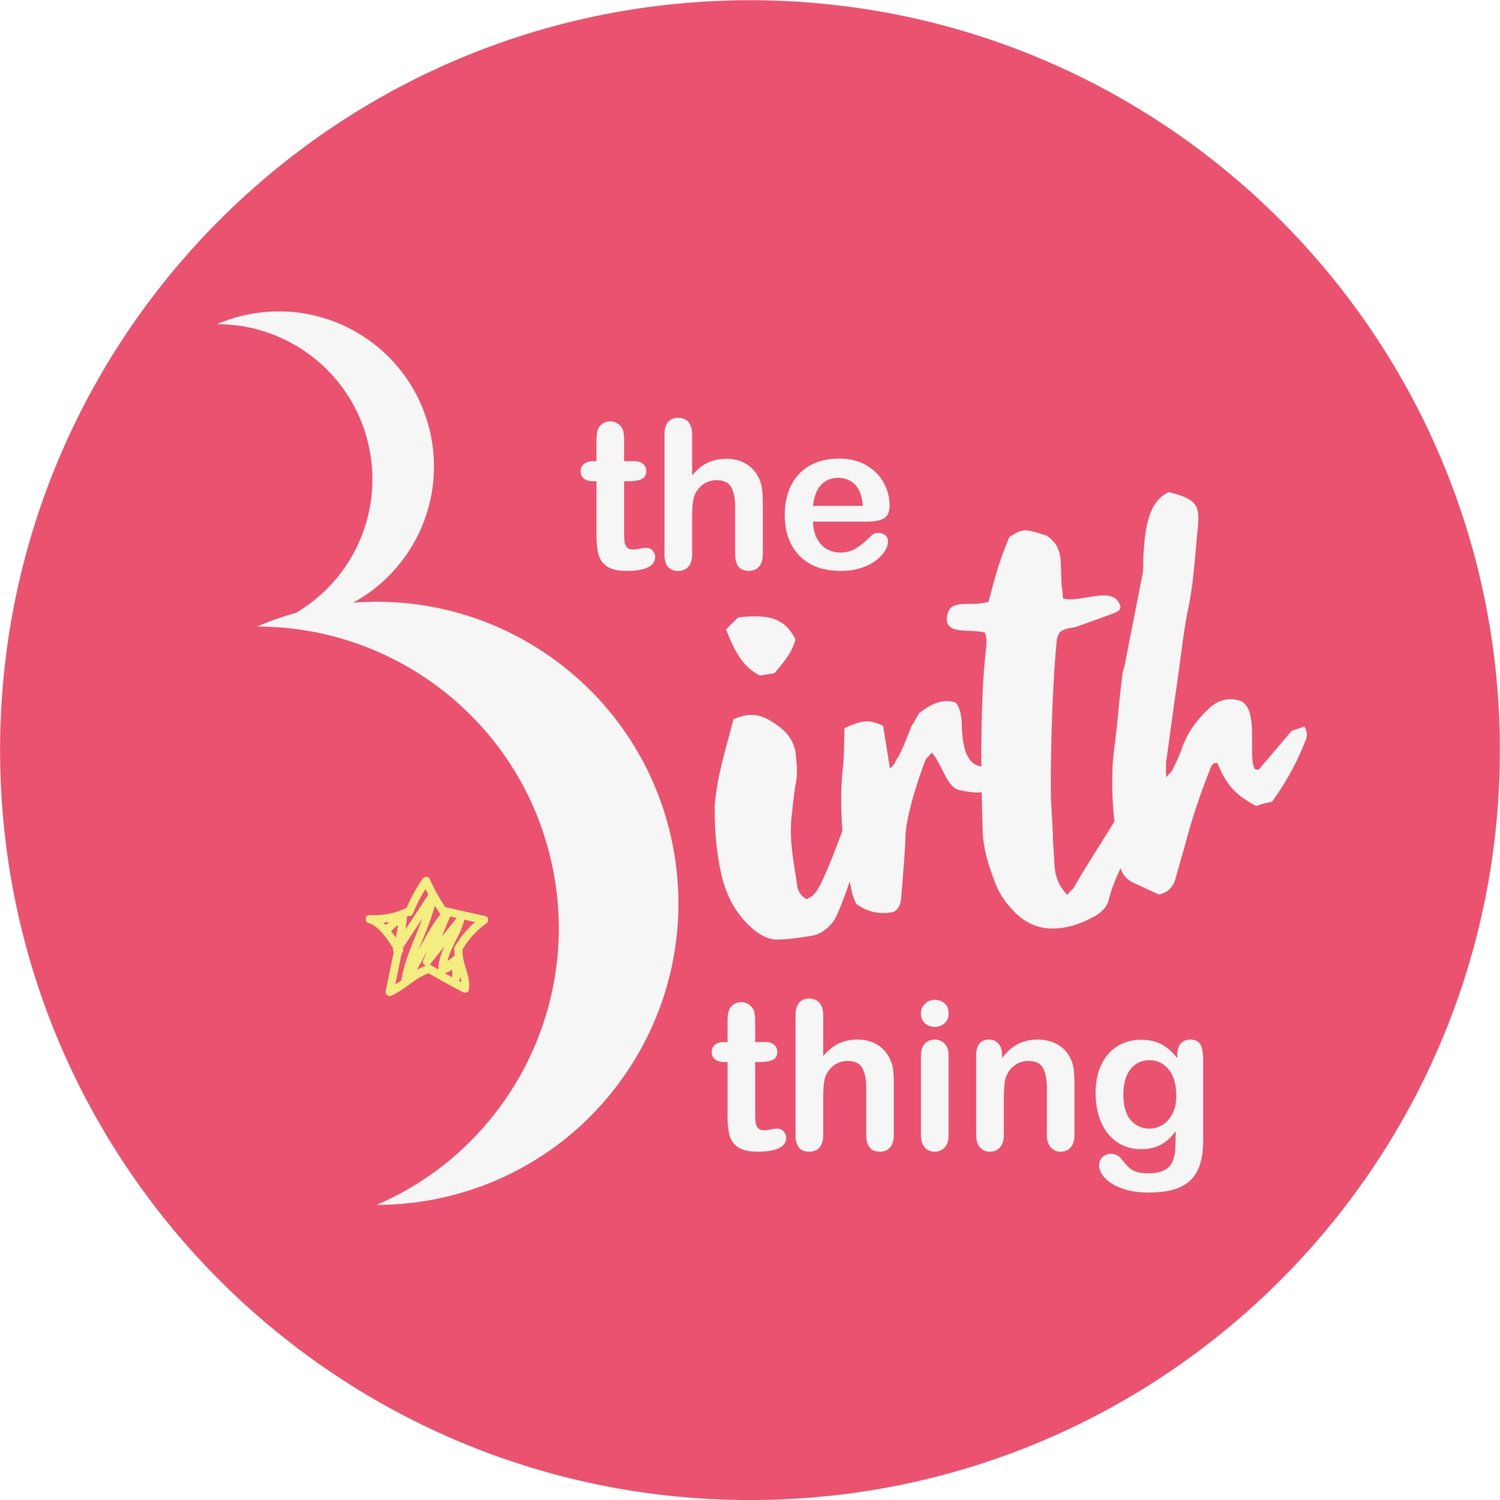 THE BIRTH THING